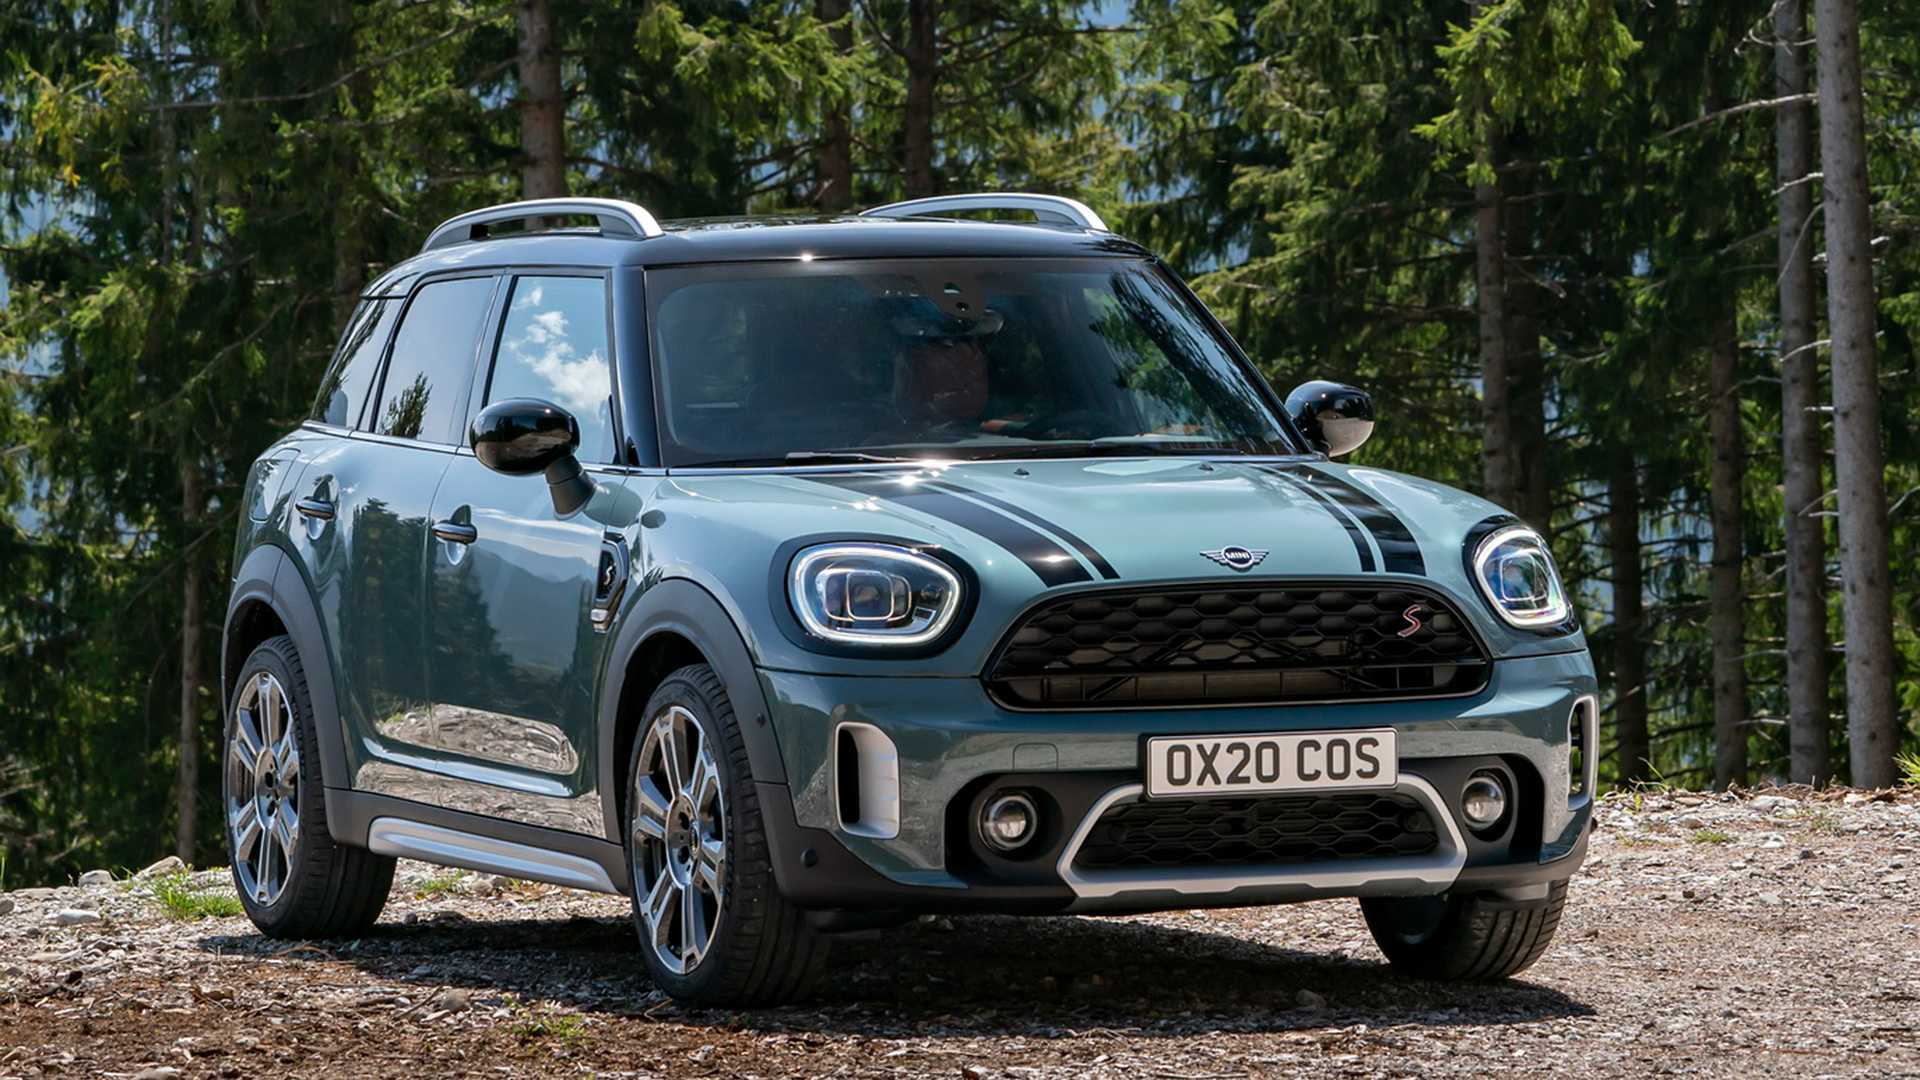 mini-cooper-s-countryman-all4-2020-7